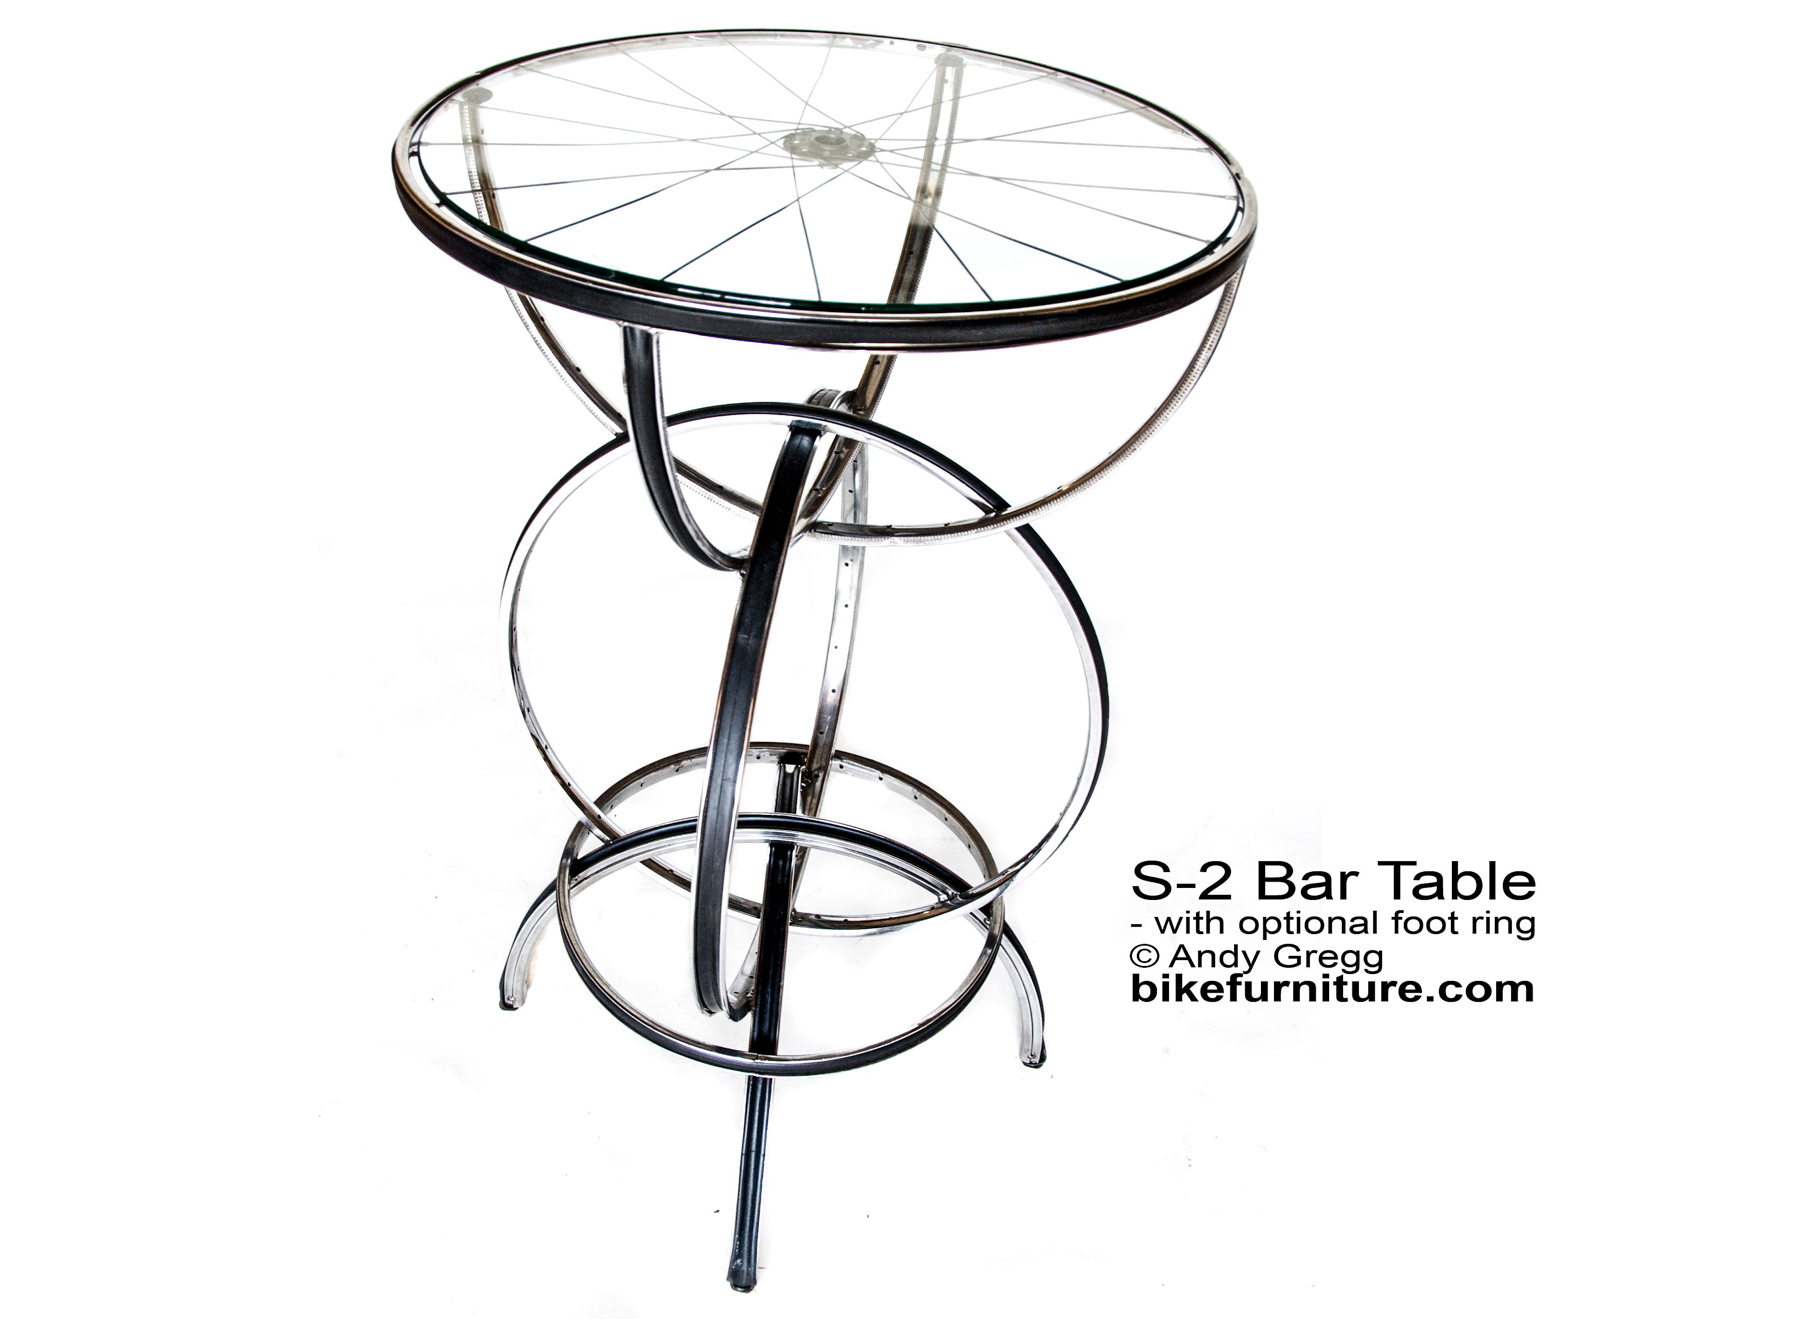 S-2 bar height table